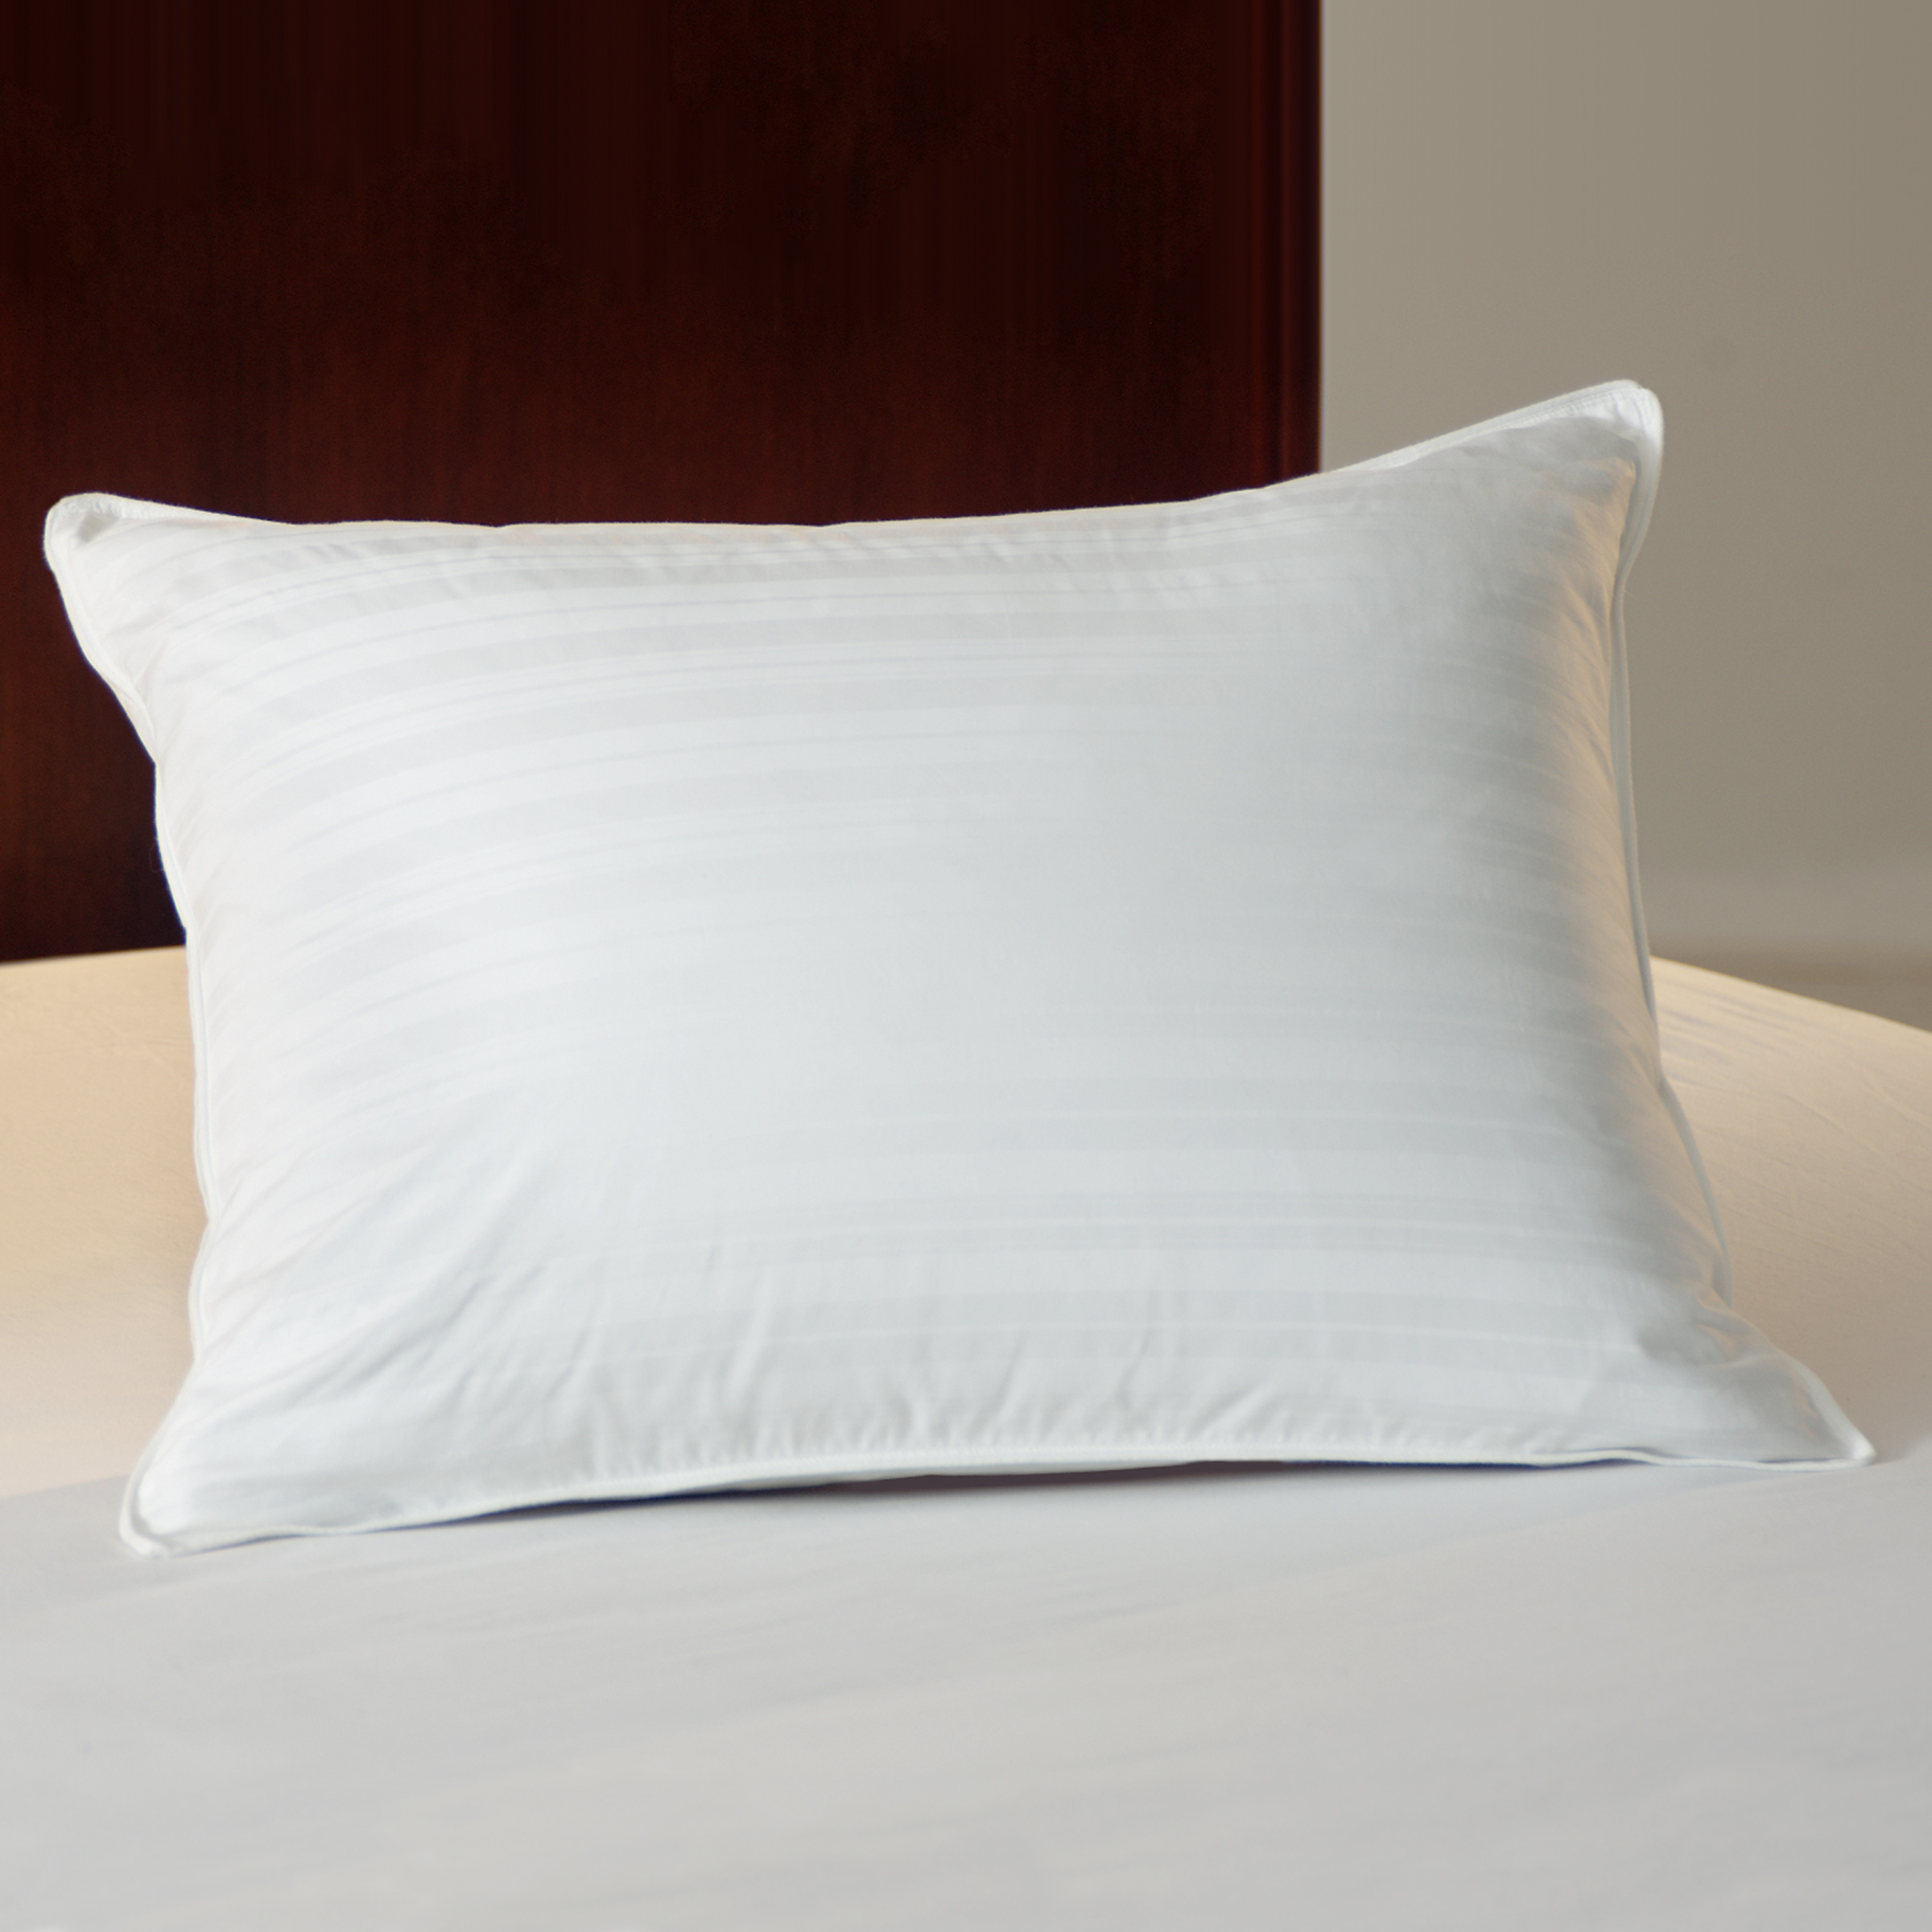 Pacific Coast SPRING AIR AFFINITY PILLOW Super Standard Or King